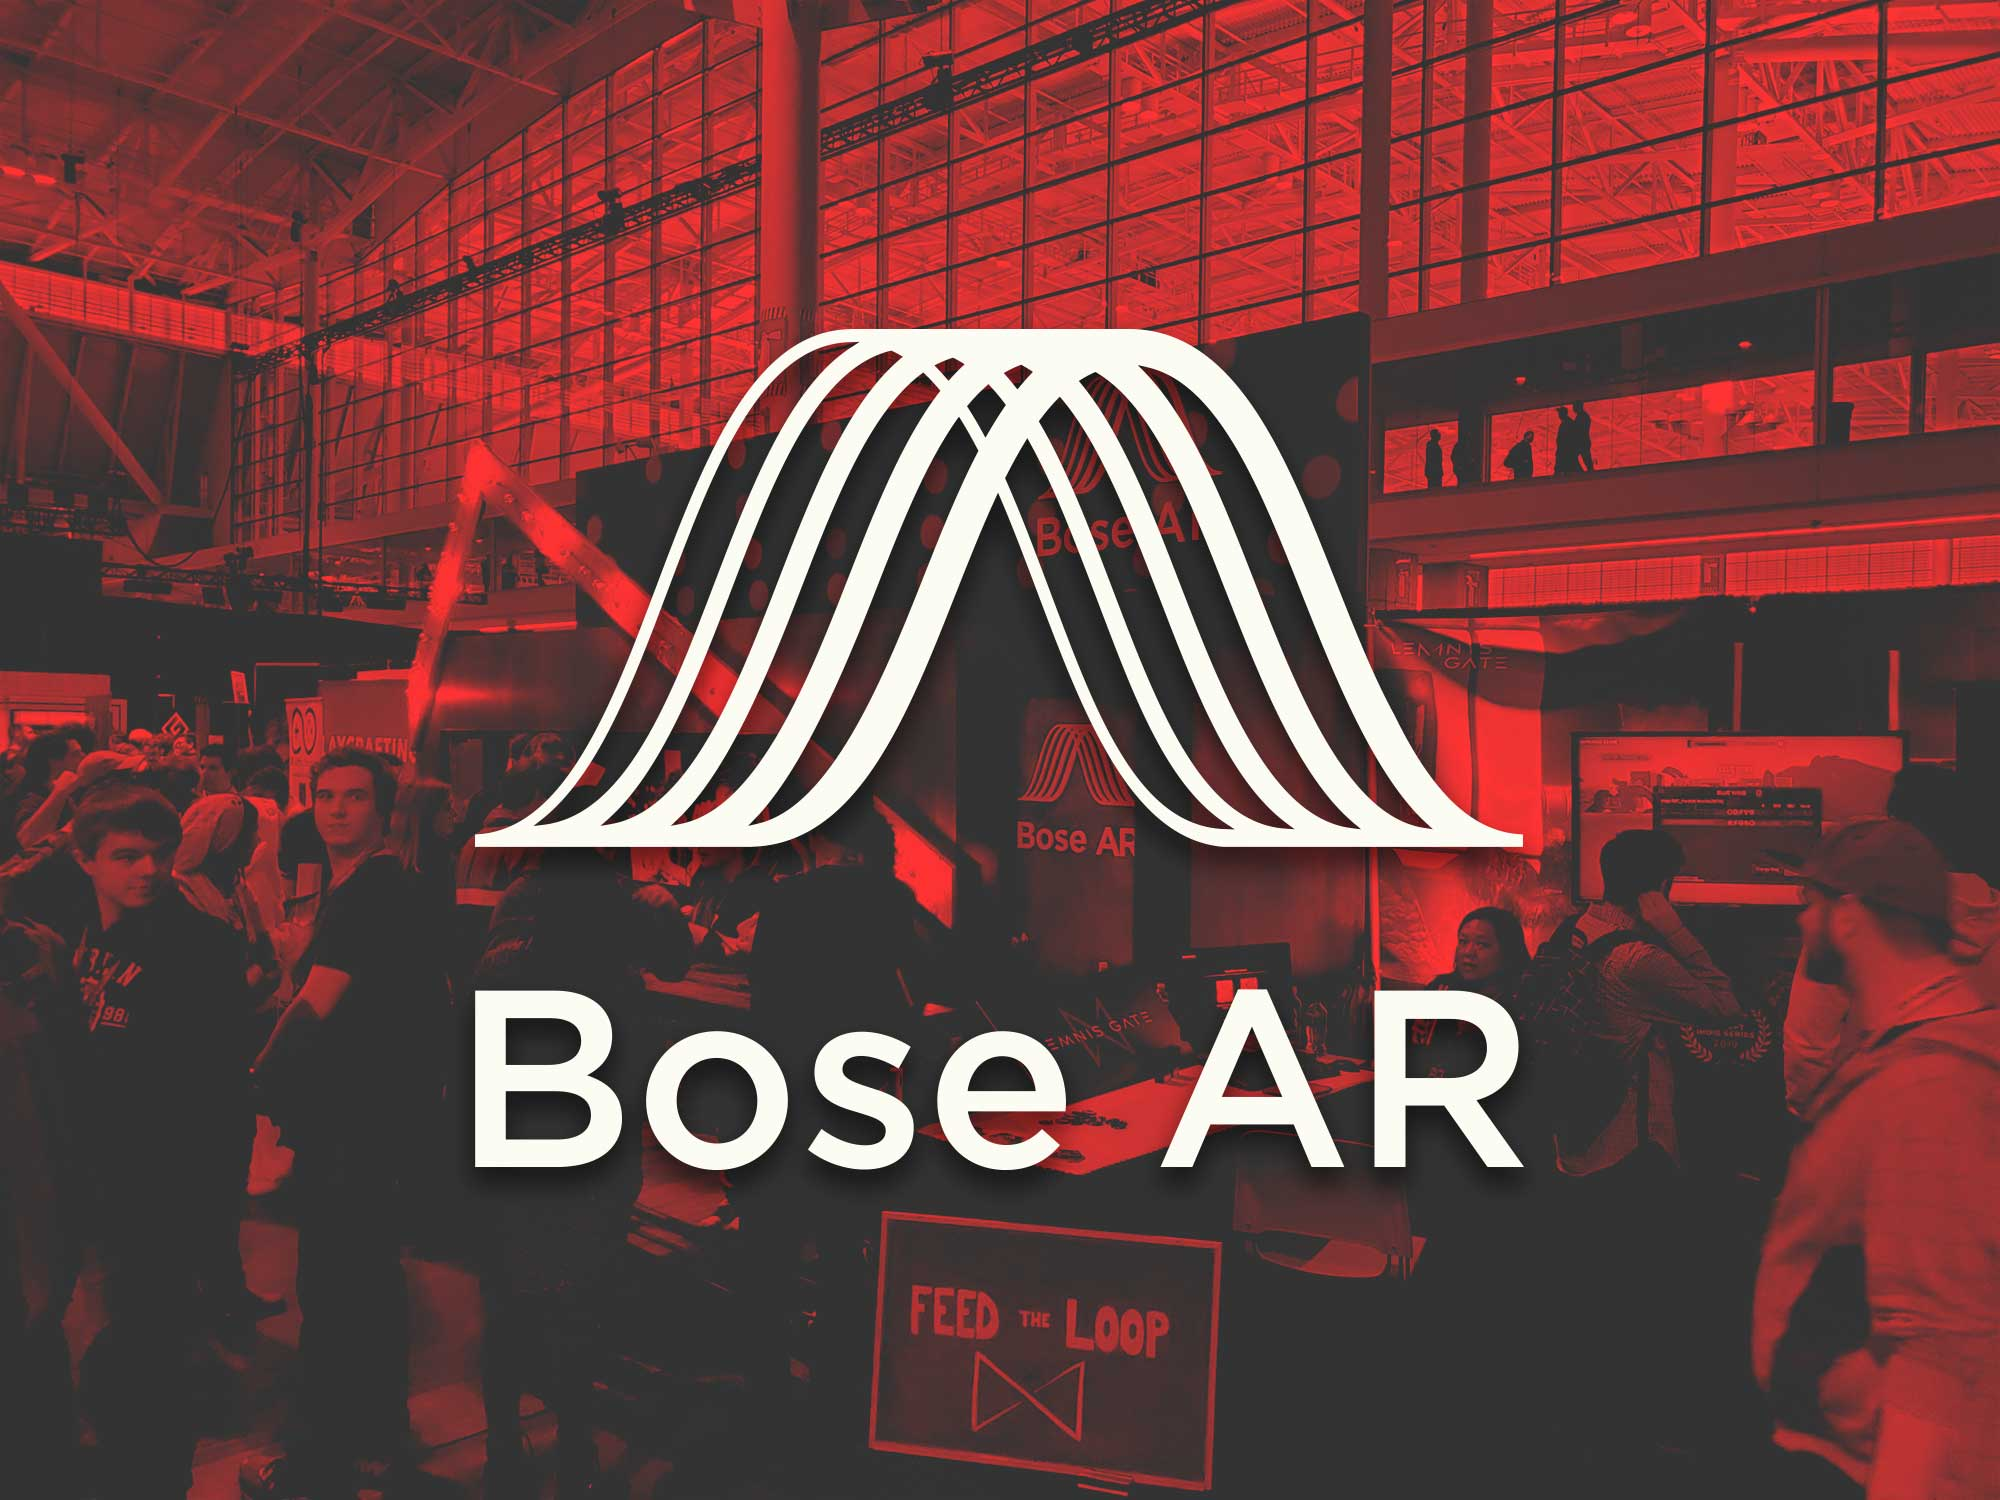 bose_ar_booth-hero